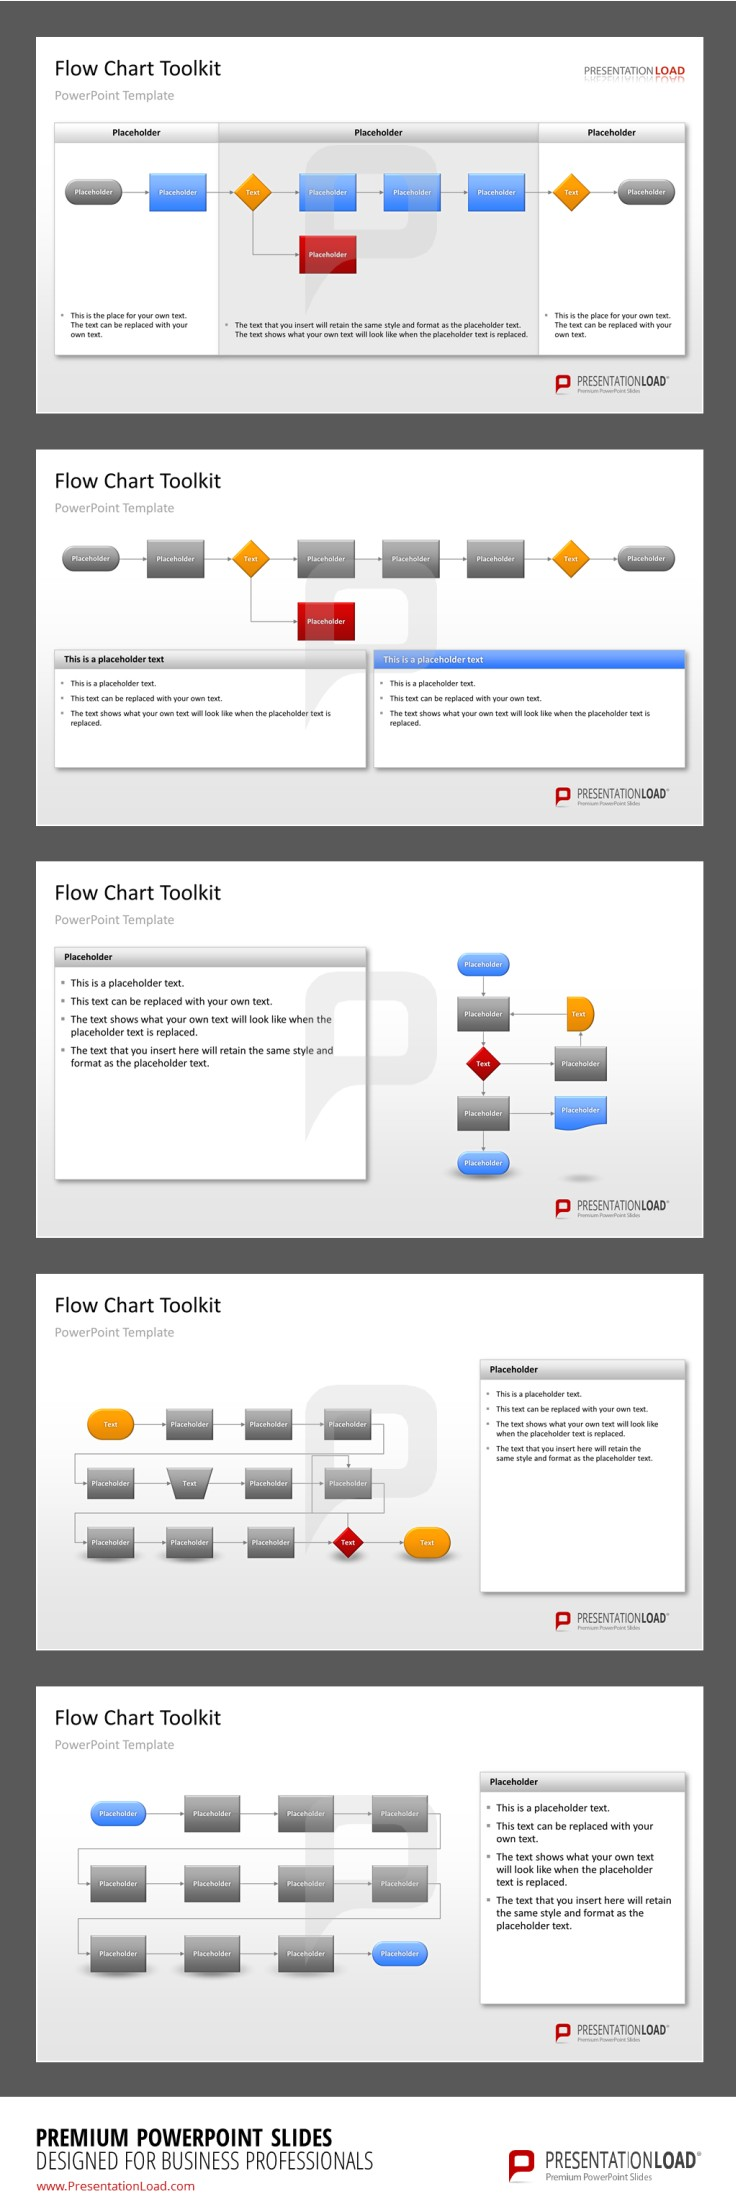 Flow Charts PowerPoint Templates All graphics and icons